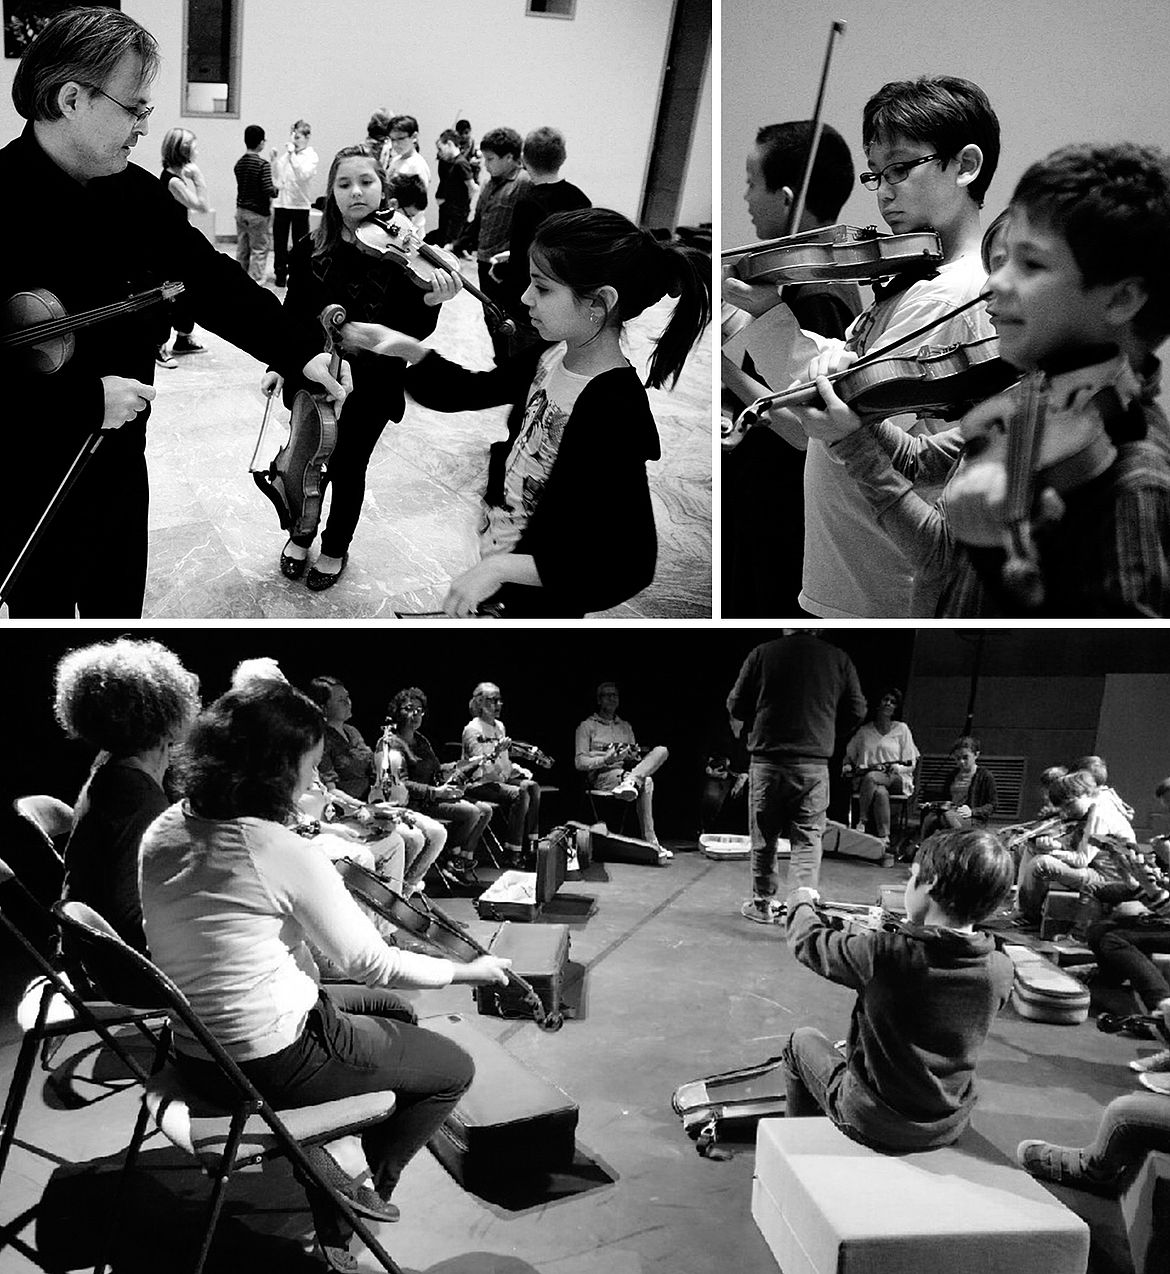 Violin workshops with families and children